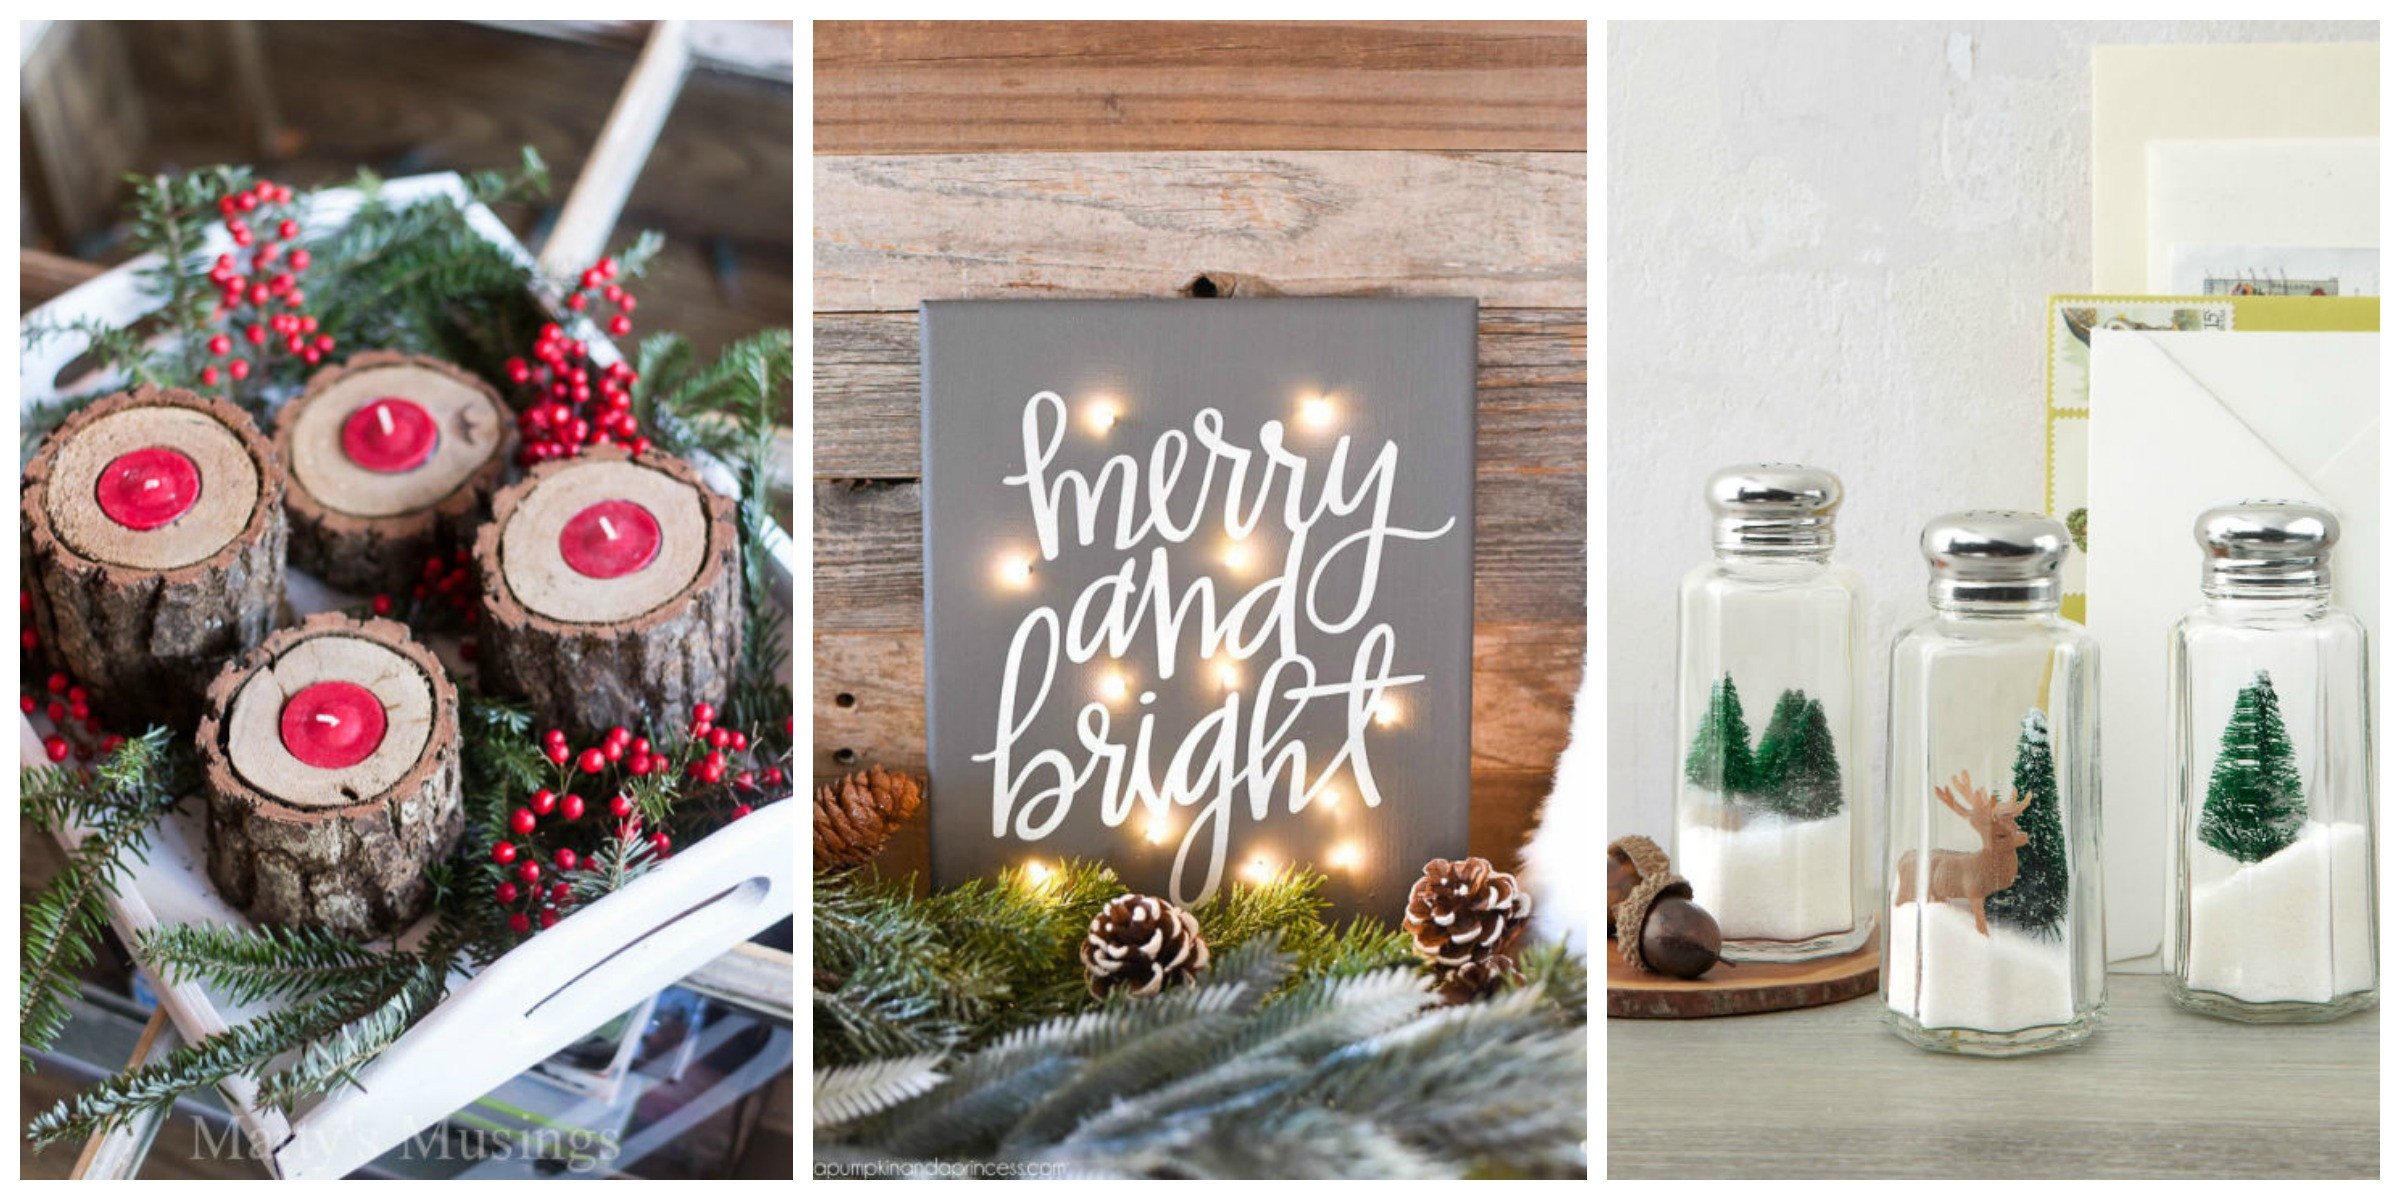 Best ideas about Christmas DIY Decorations . Save or Pin 35 DIY Homemade Christmas Decorations Christmas Decor Now.